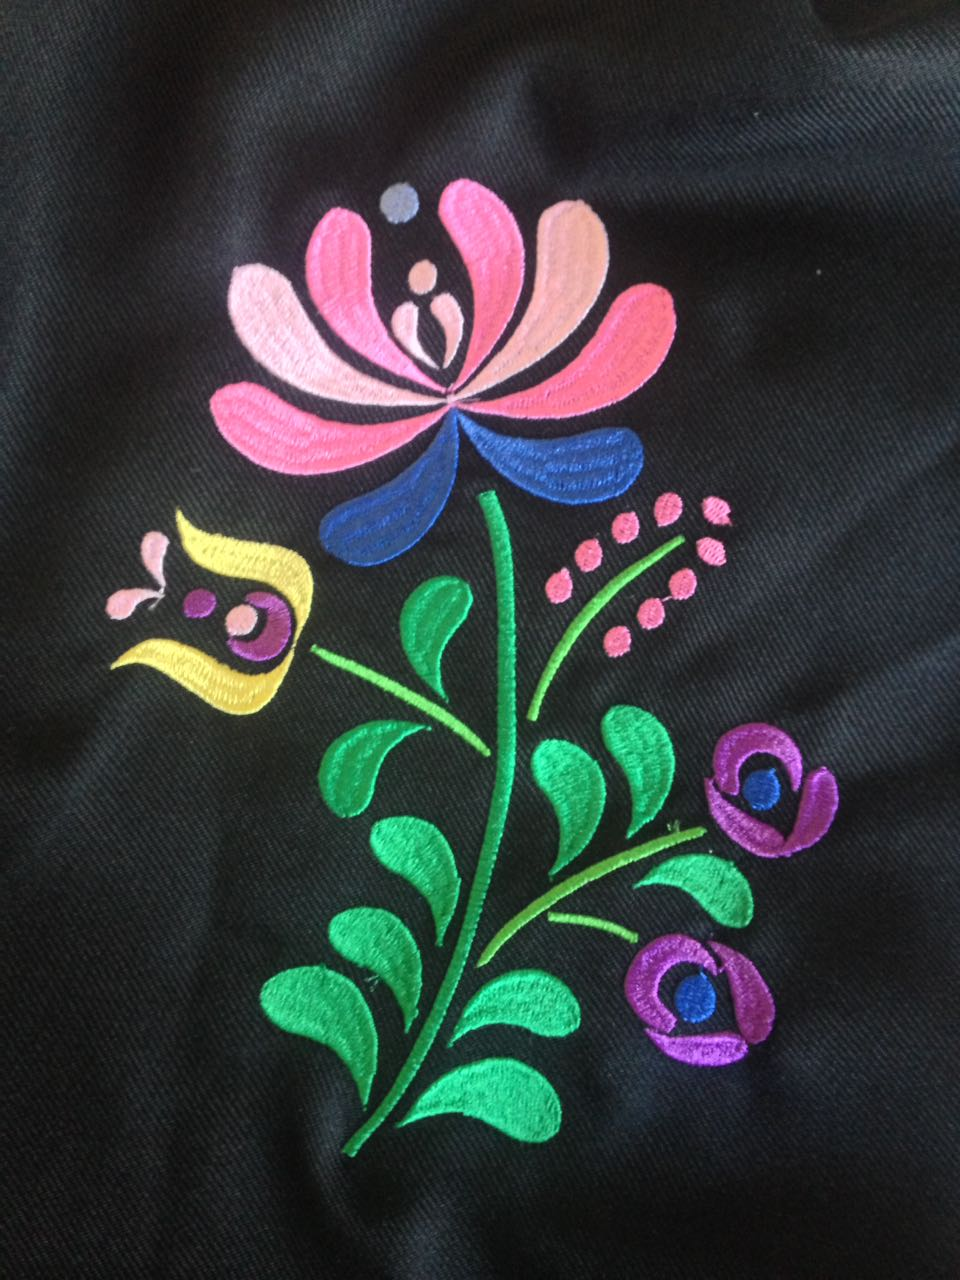 Flower JAZ embroidery design, 179 x 129.7 mm (7´ x 5´) embroidery matrix, different sizes embroidery design Embroidery matrix, Mexican design example image 4